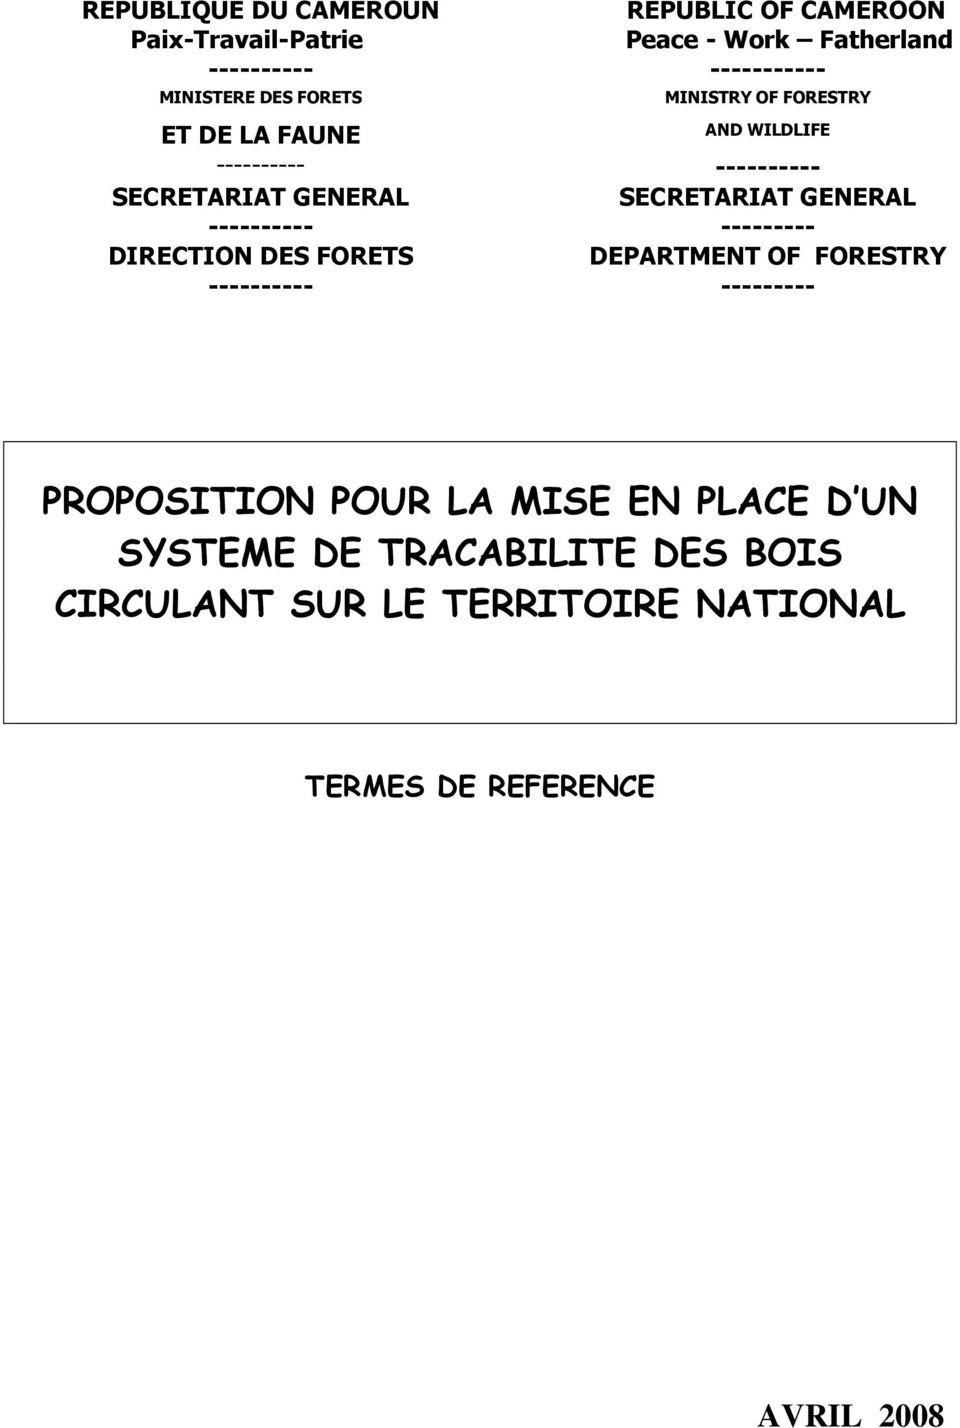 WILDLIFE SECRETARIAT GENERAL --------- DEPARTMENT OF FORESTRY --------- PROPOSITION POUR LA MISE EN